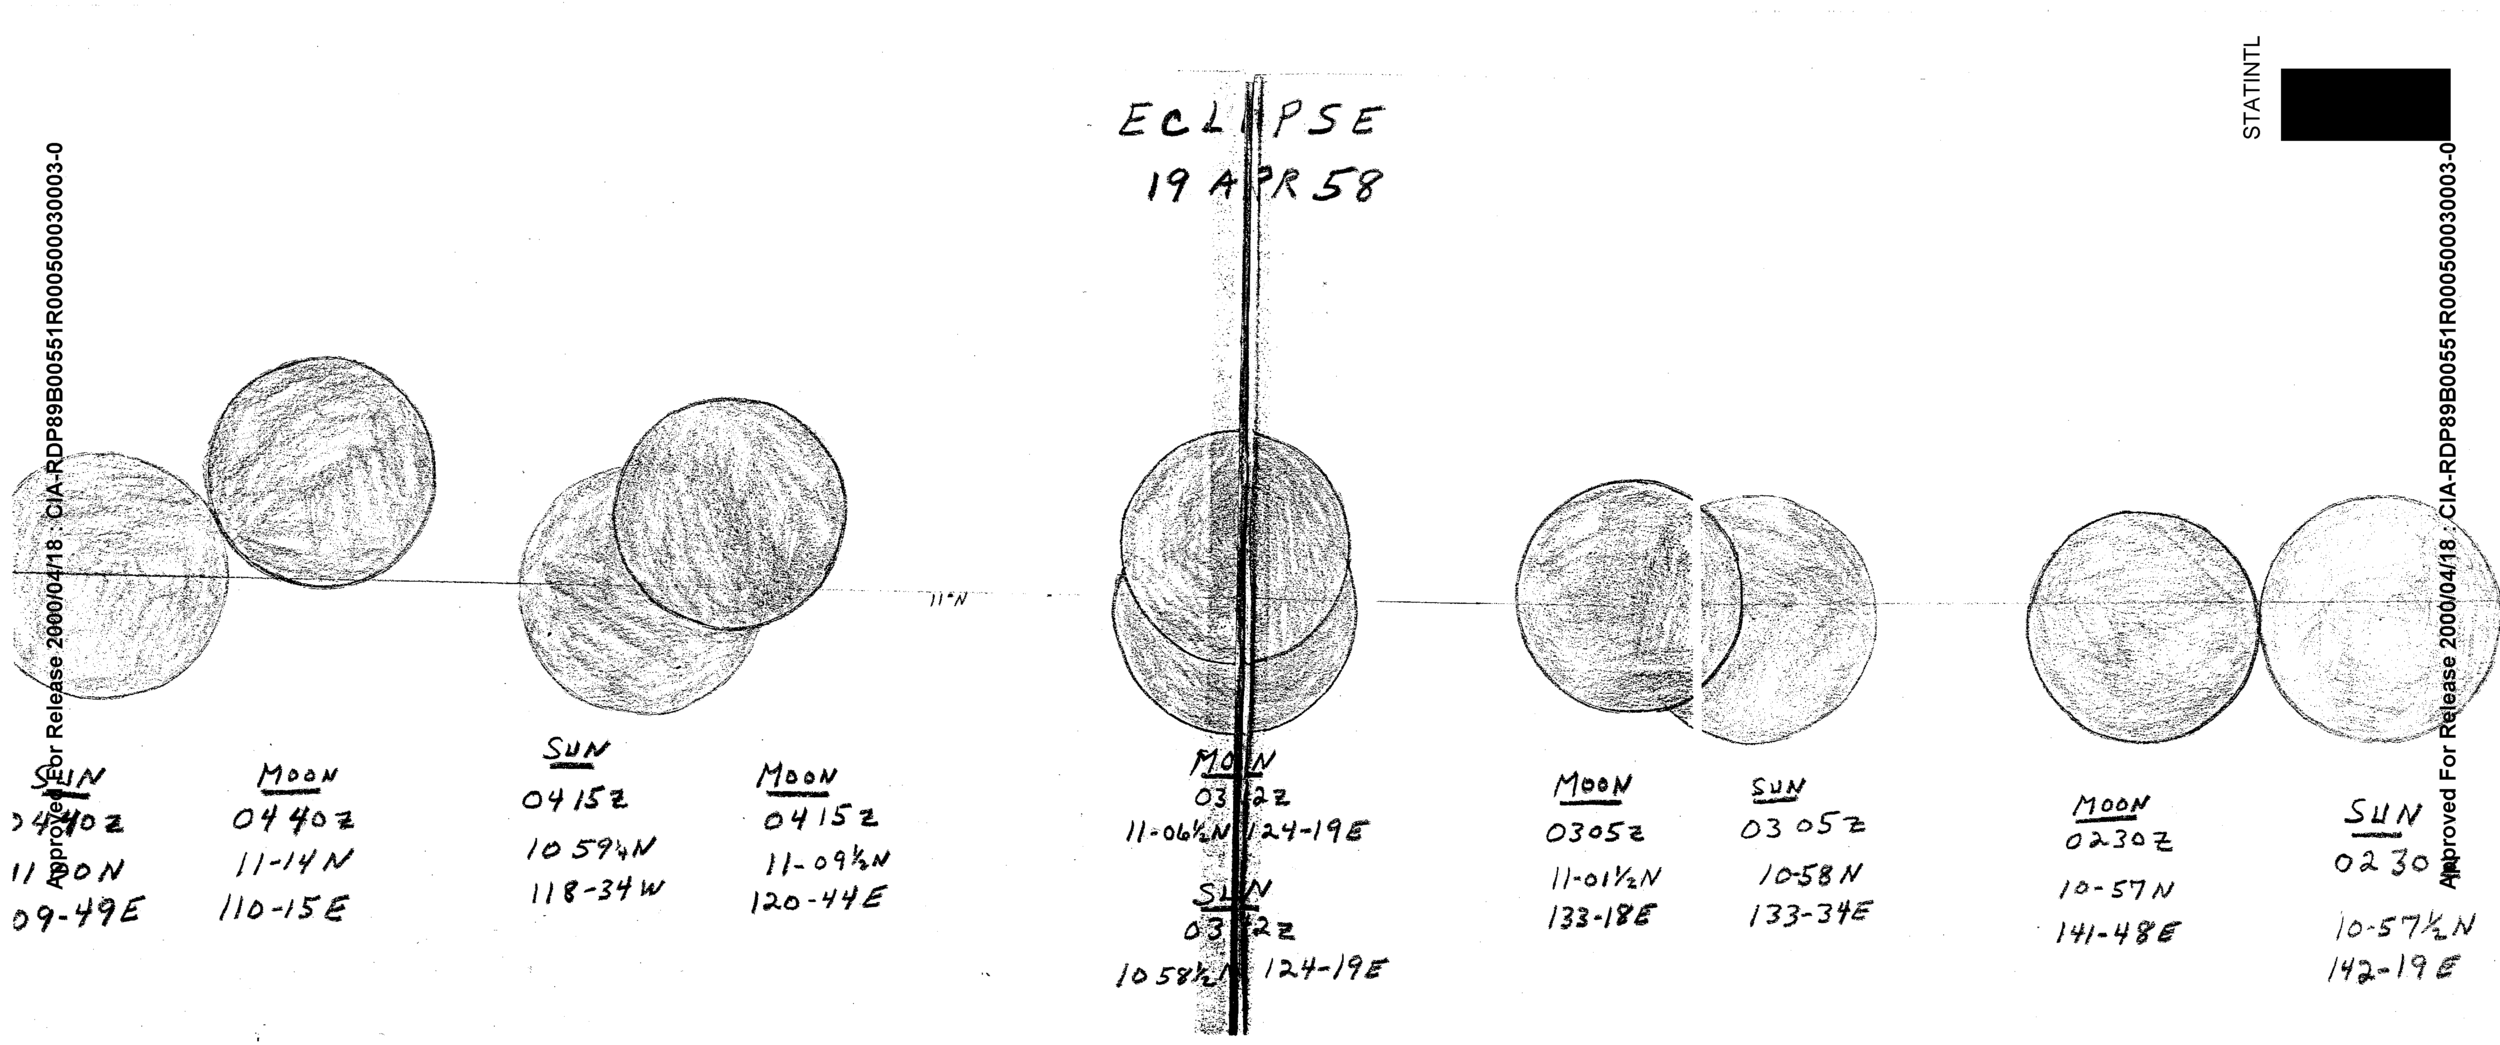 A drawing of an April 1958 eclipse found in declassified CIA files. (CIA.gov)